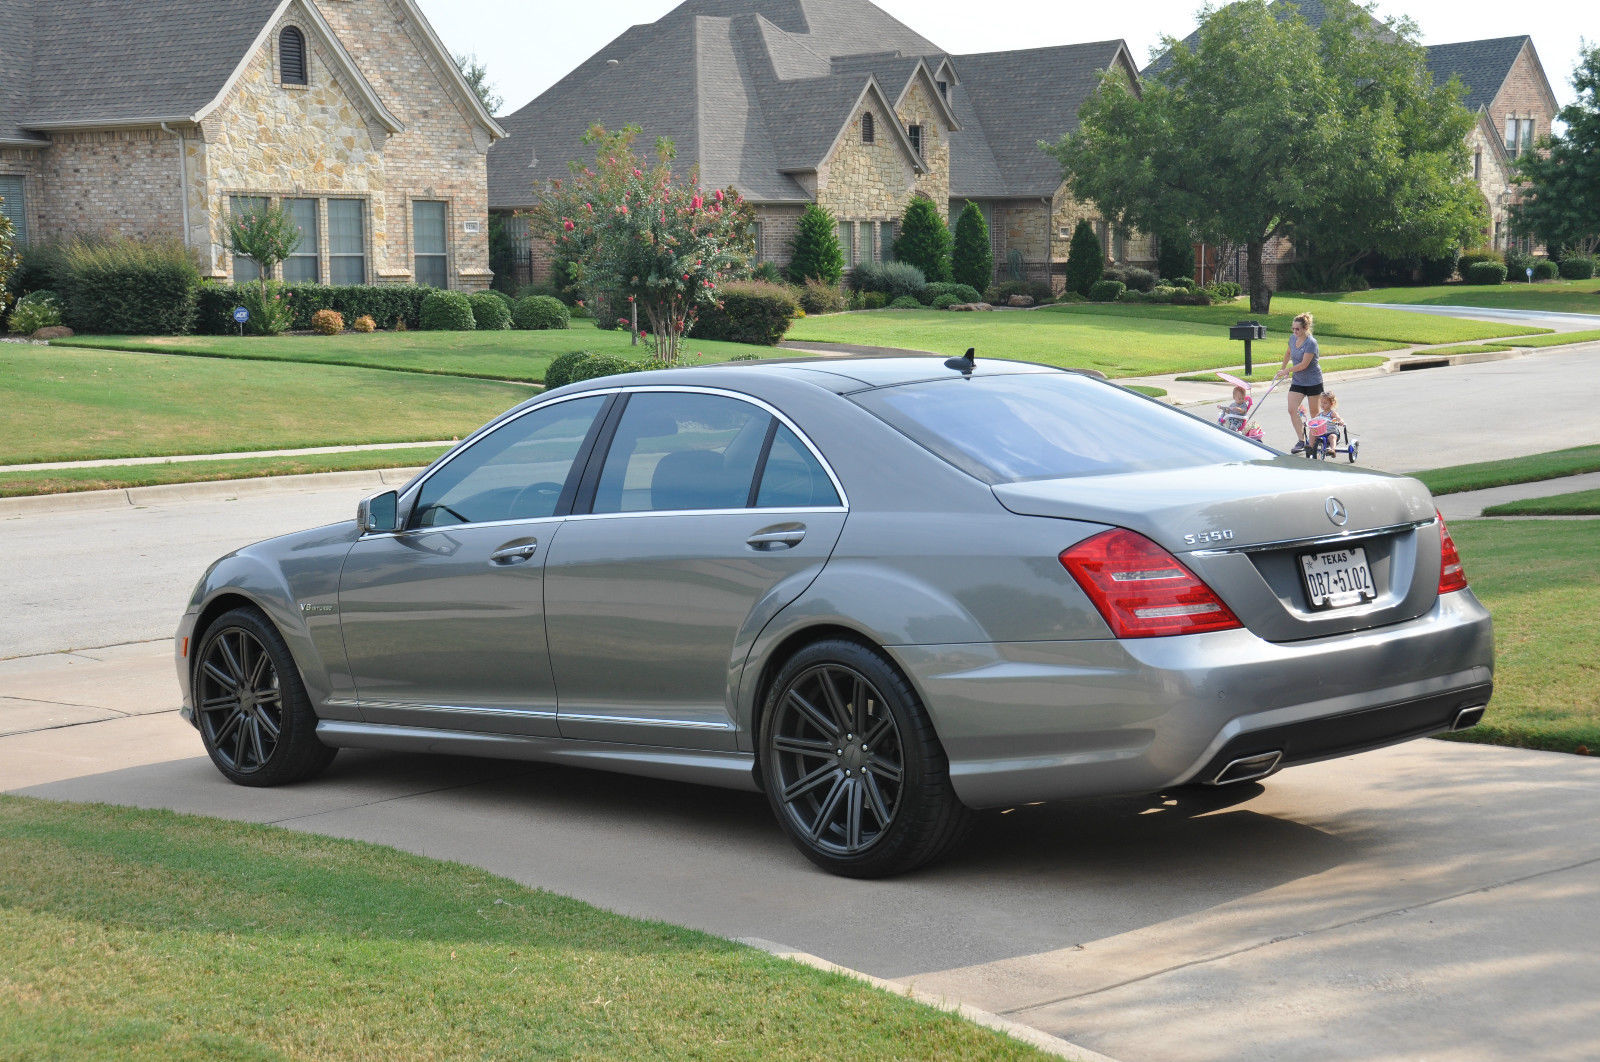 Mercedes benz w221 s550 on 20 vossen wheels benztuning for Mercedes benz wheel